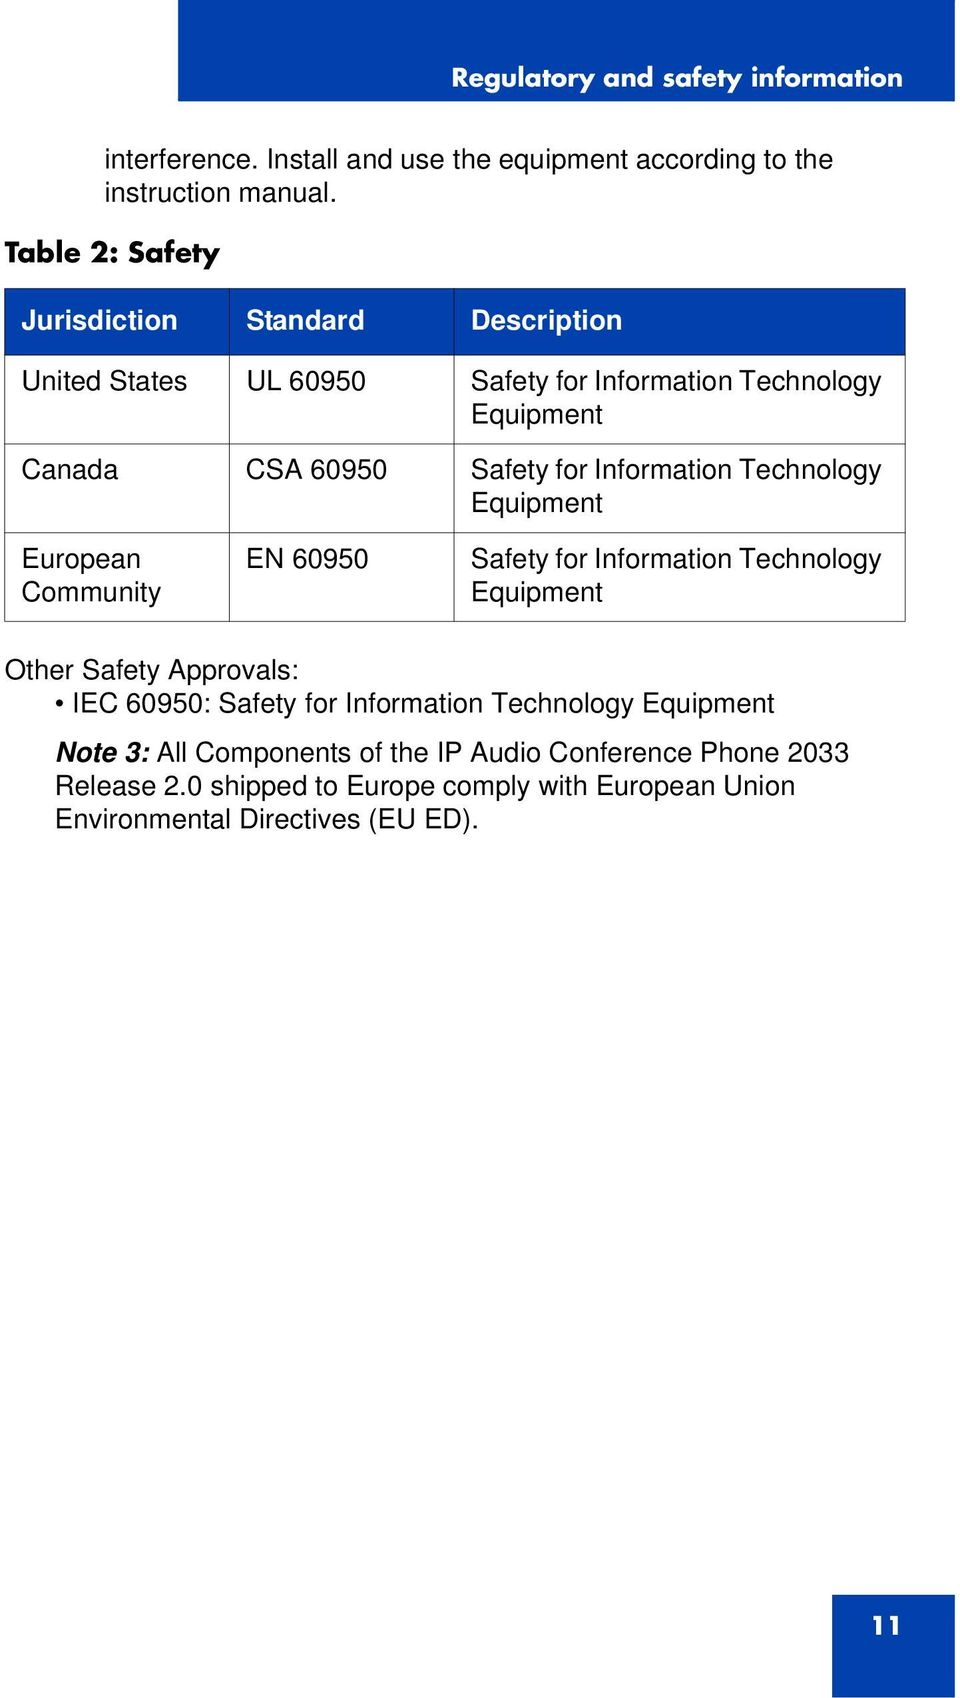 Information Technology Equipment European Community EN 60950 Safety for Information Technology Equipment Other Safety Approvals: IEC 60950: Safety